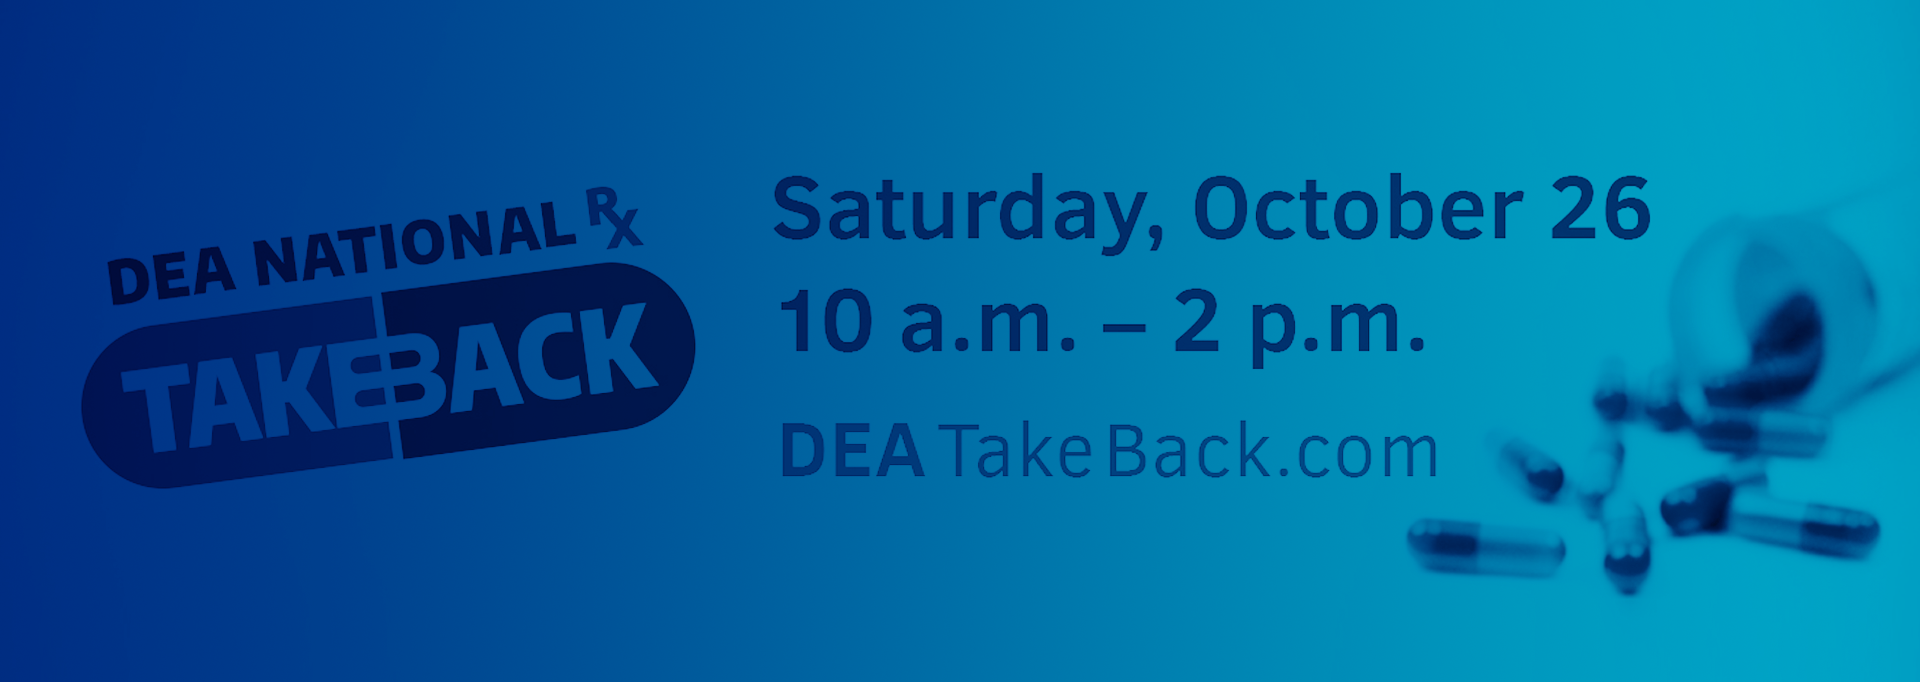 DEA national prescription takeback, Saturday, Oct. 26 from 10 a.m. until 2 p.m., DEATakeBack.com